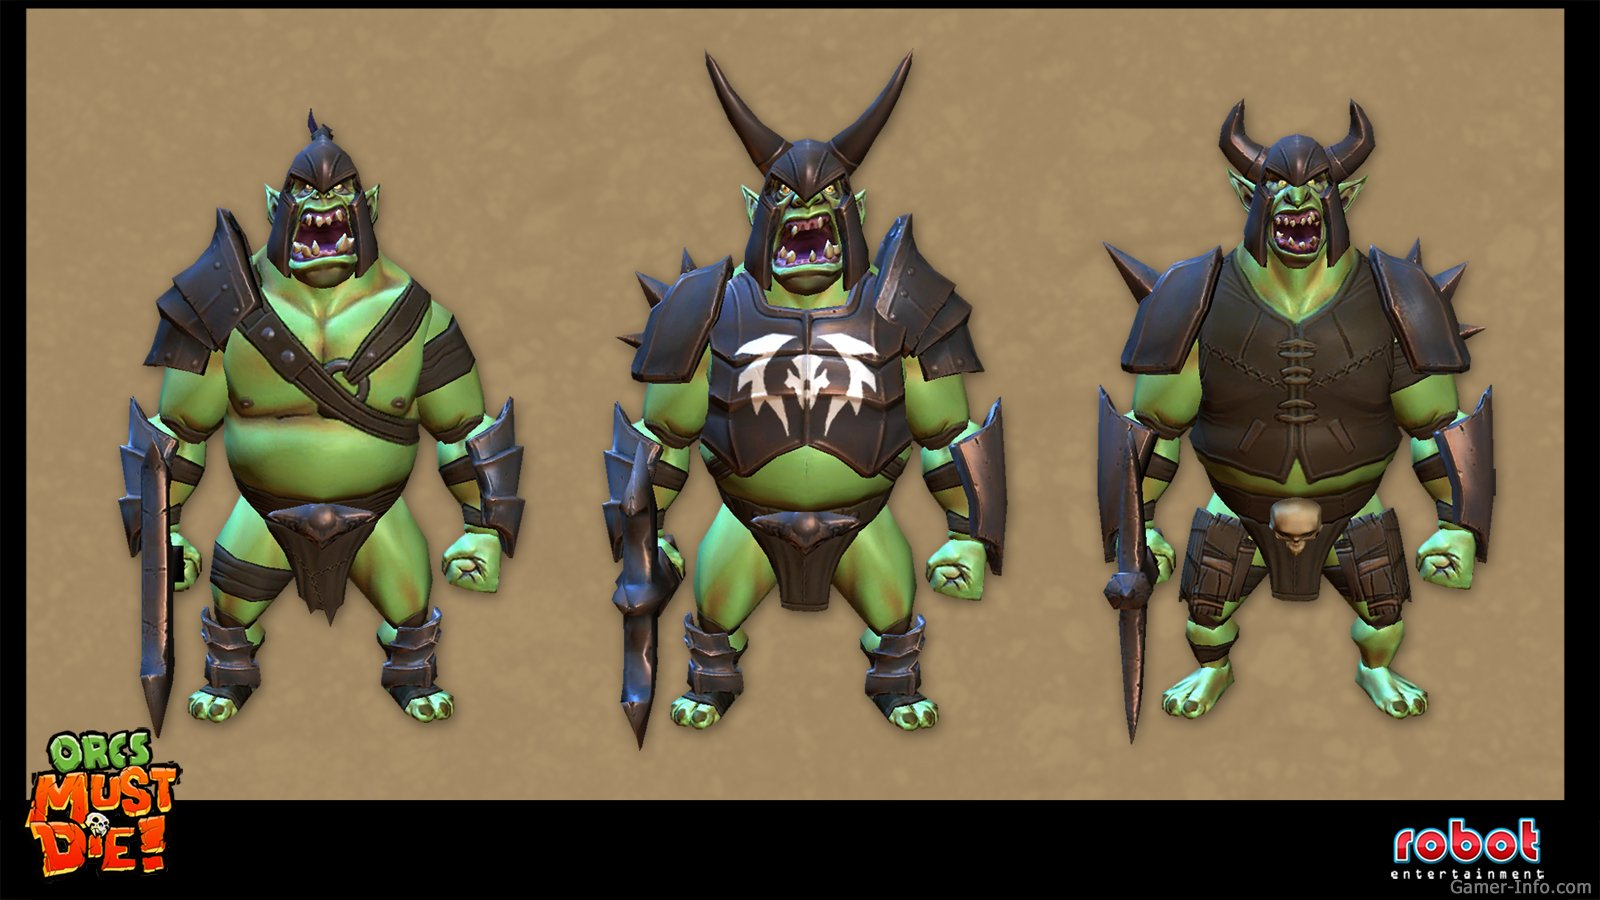 Orcs must die nude pics naked photo